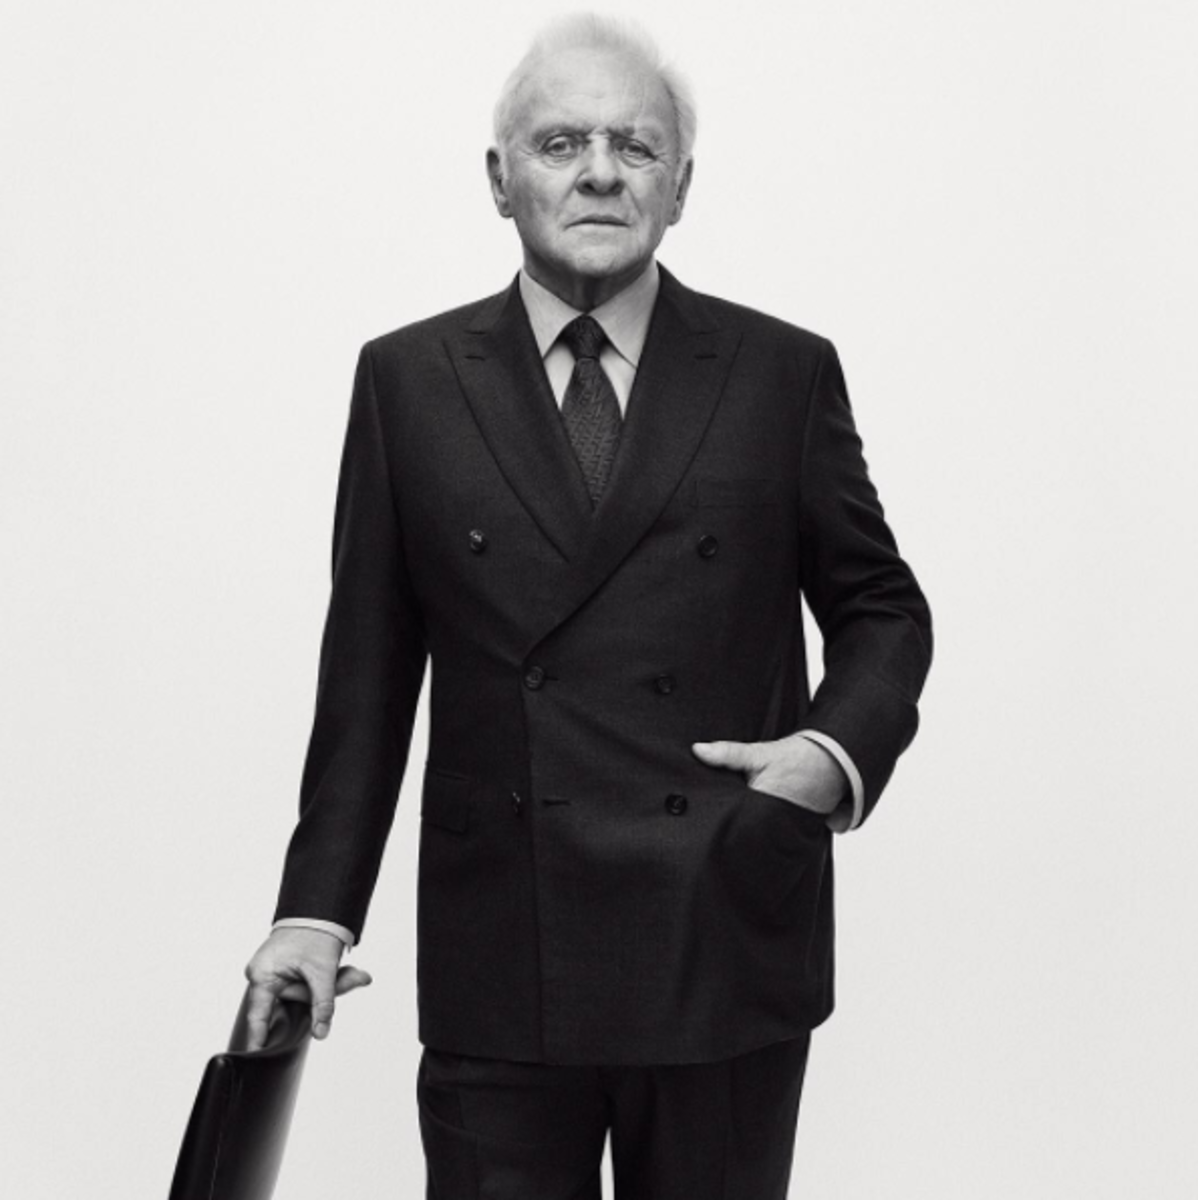 Sir Anthony Hopkins in Brioni's Fall 2017 campaign. Photo: @brioni_official/Instagram